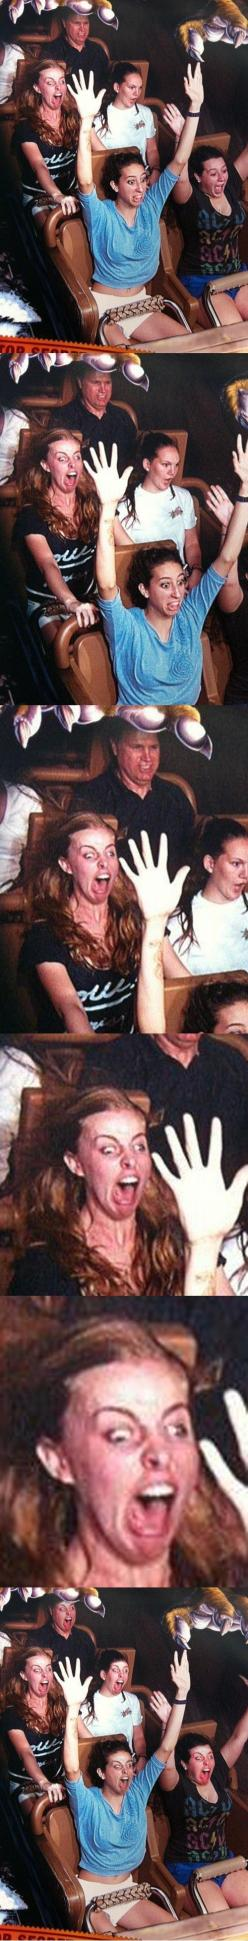 Can't. Stop. Laughing!: Laughing So Hard, Giggle, Rollercoaster, Cant, Face Swaps, Funny Stuff, Roller Coasters, Faceswap, So Funny